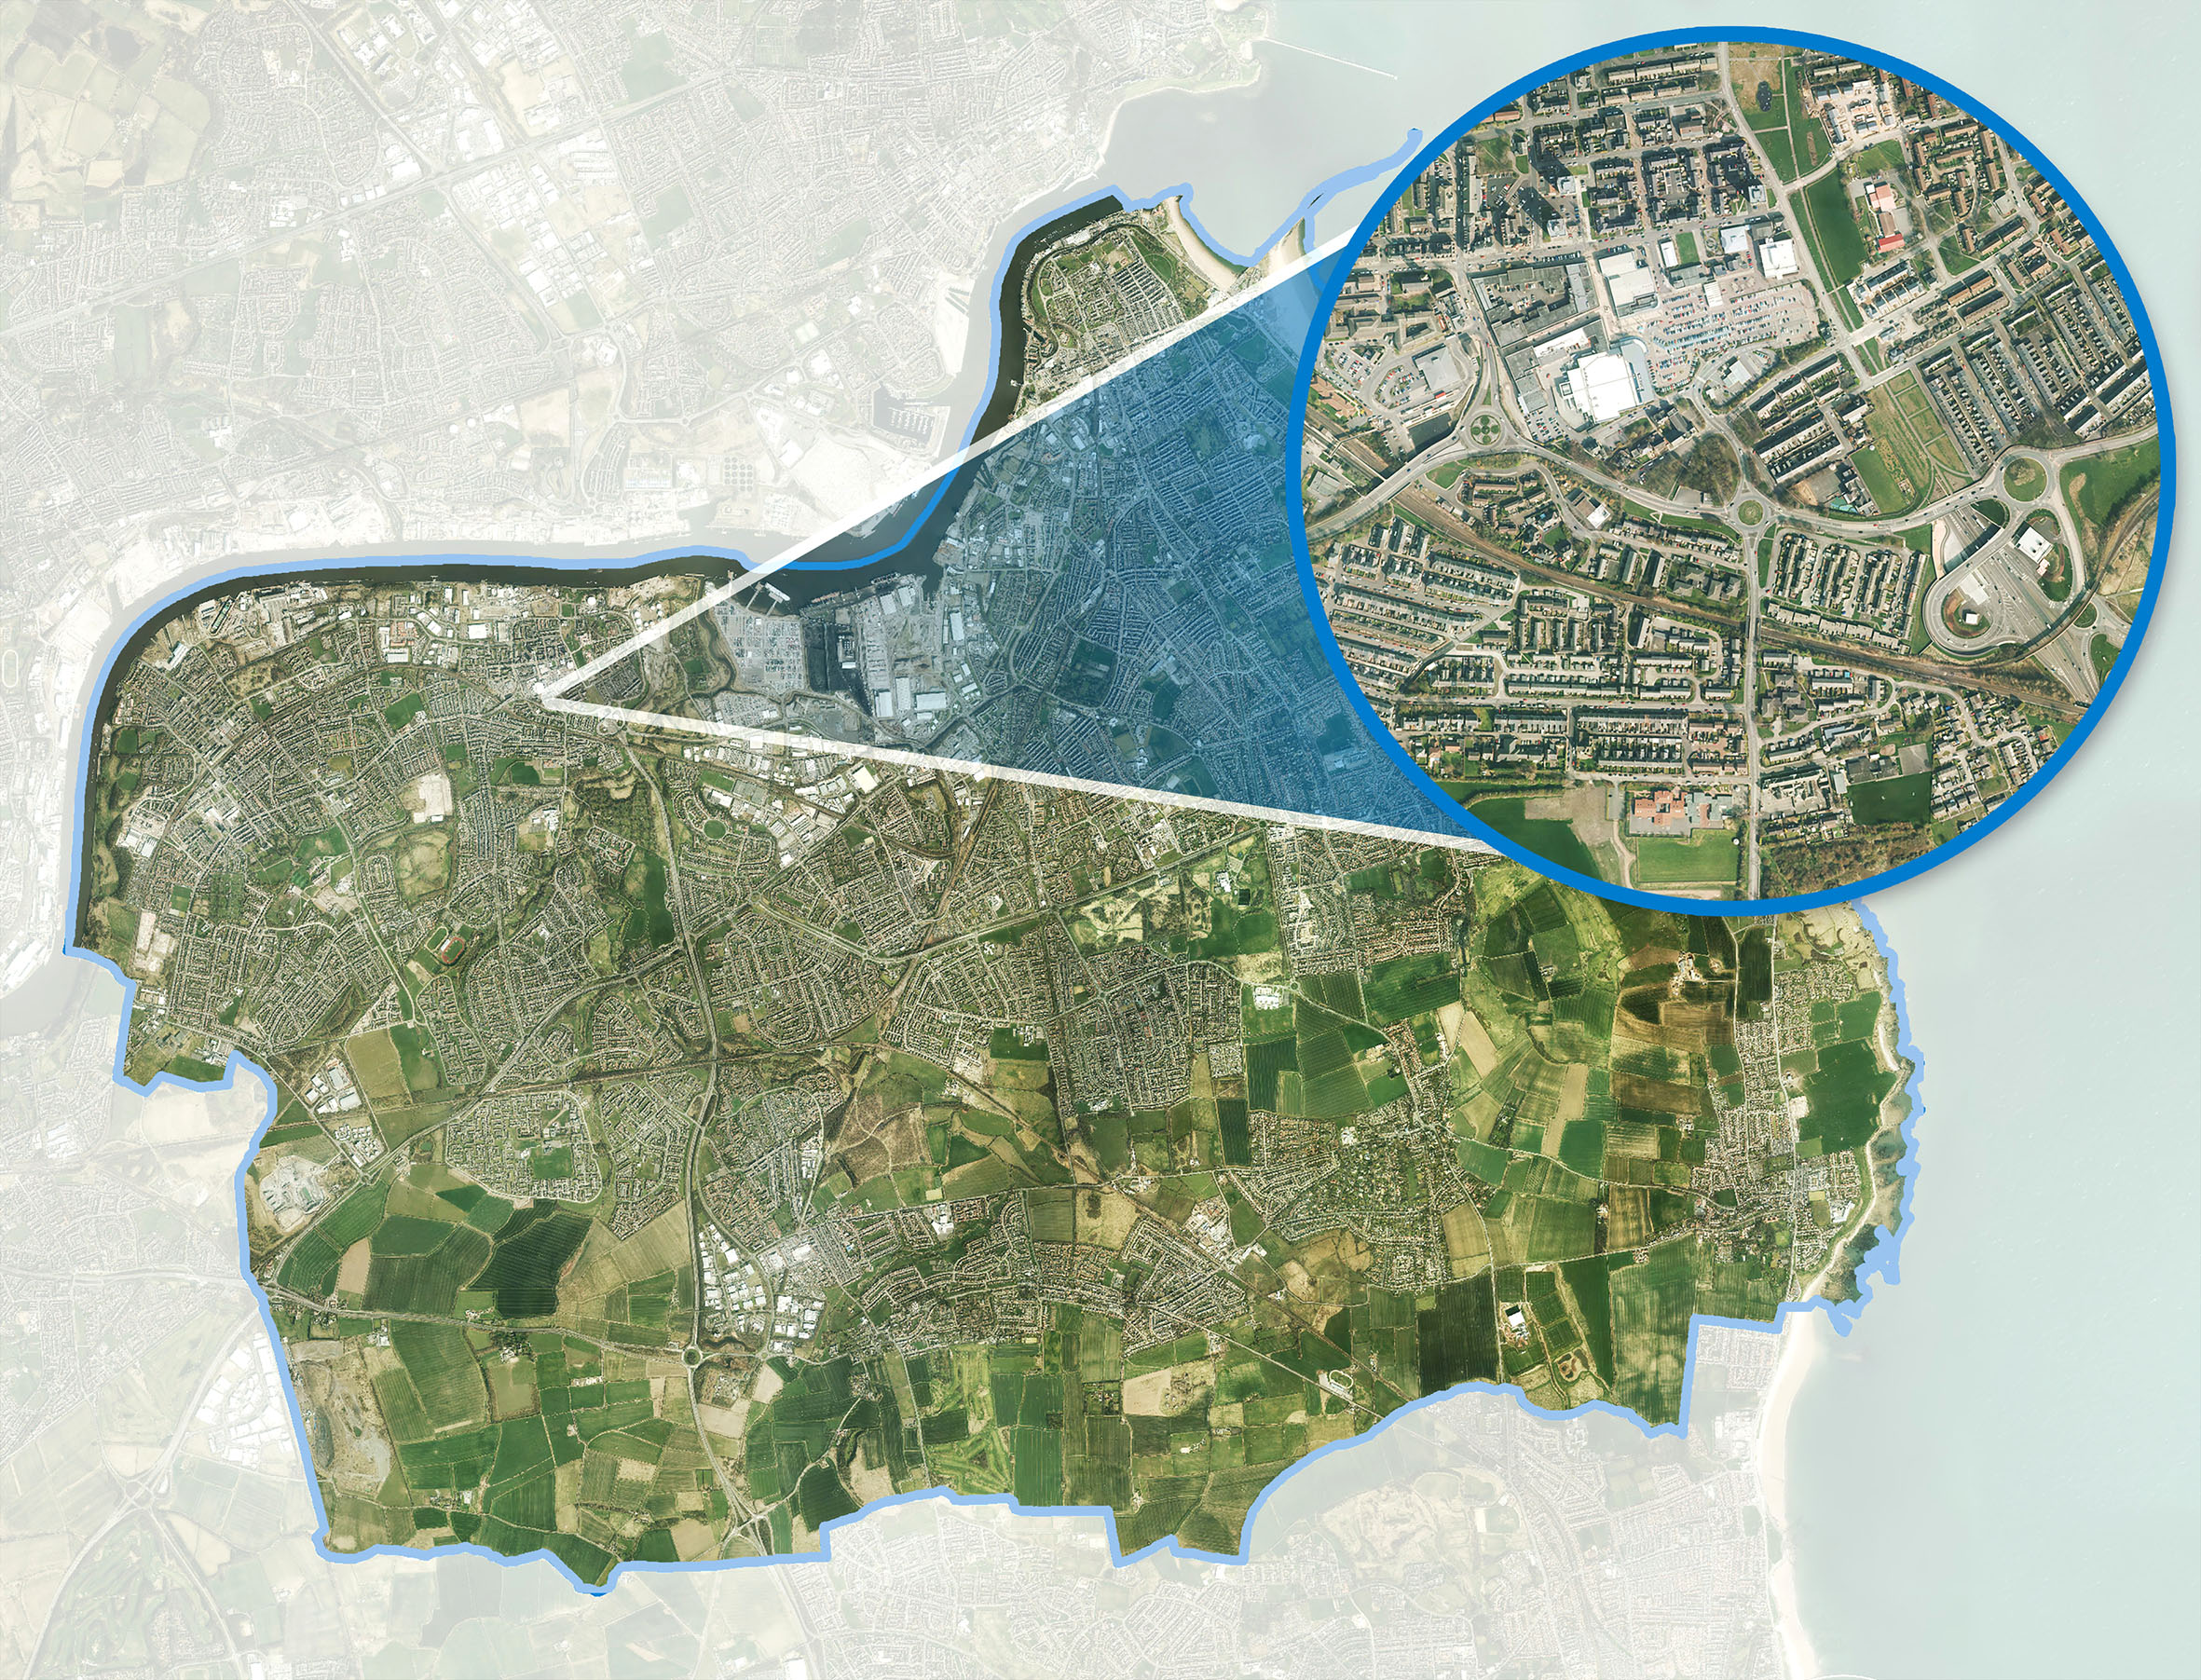 South Tyneside Council of the UK is using Bluesky's digital aerial survey data to update essential Council records